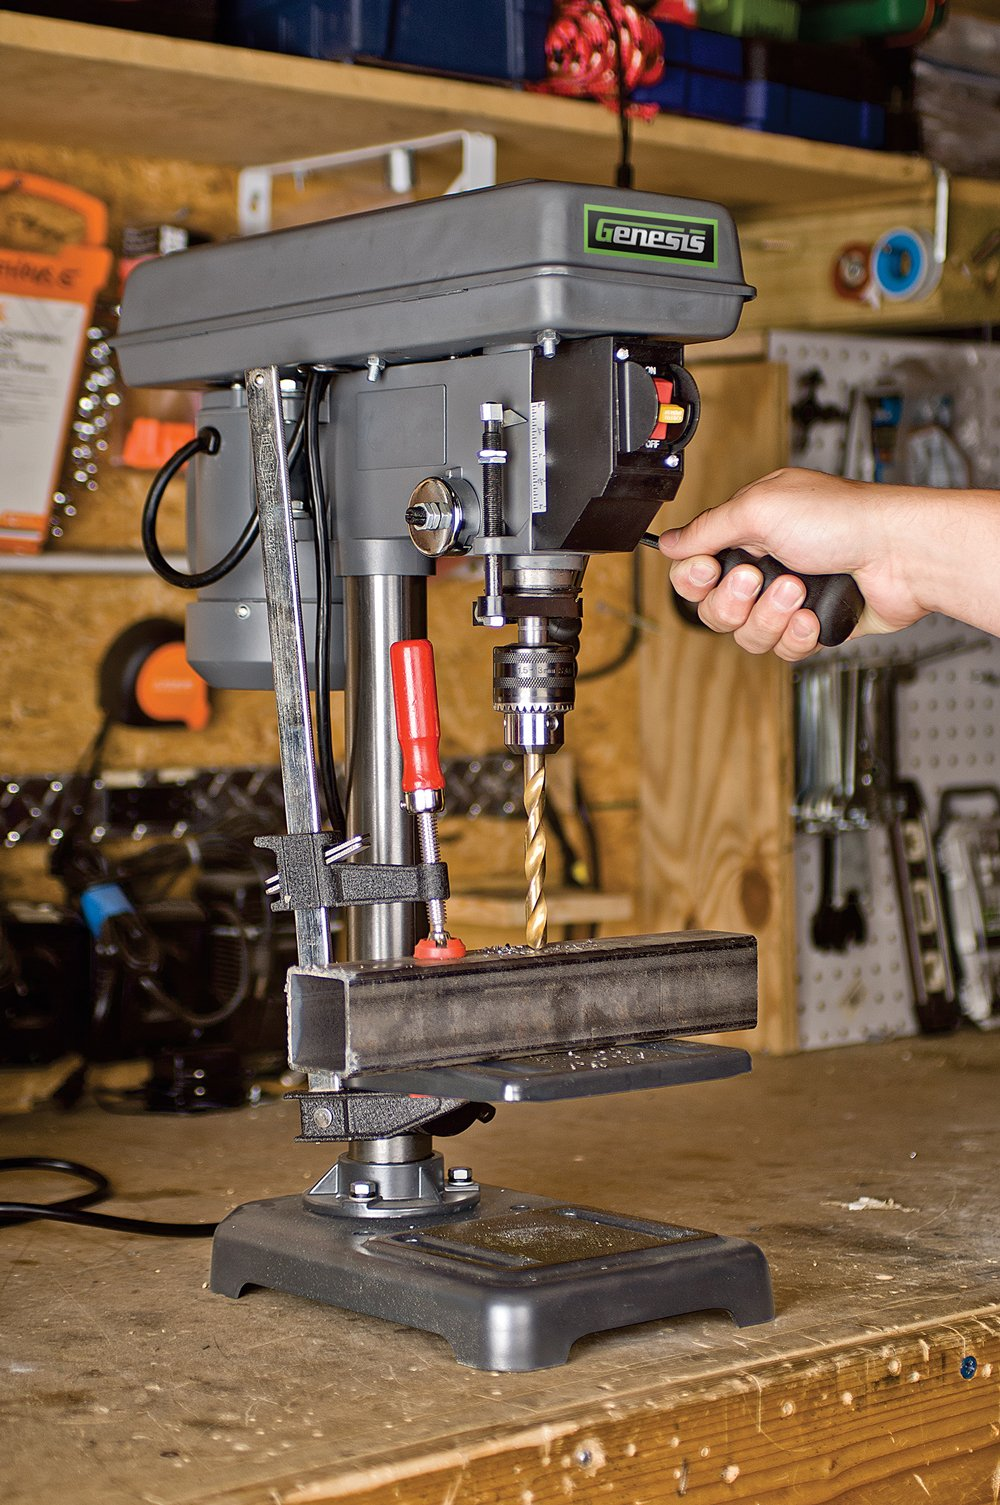 Genesis GDP805P 8 In. 5-Speed 2.6 Amp Drill Press with 1/2 In. Chuck & Tilt Table, by Genesis (Image #3)